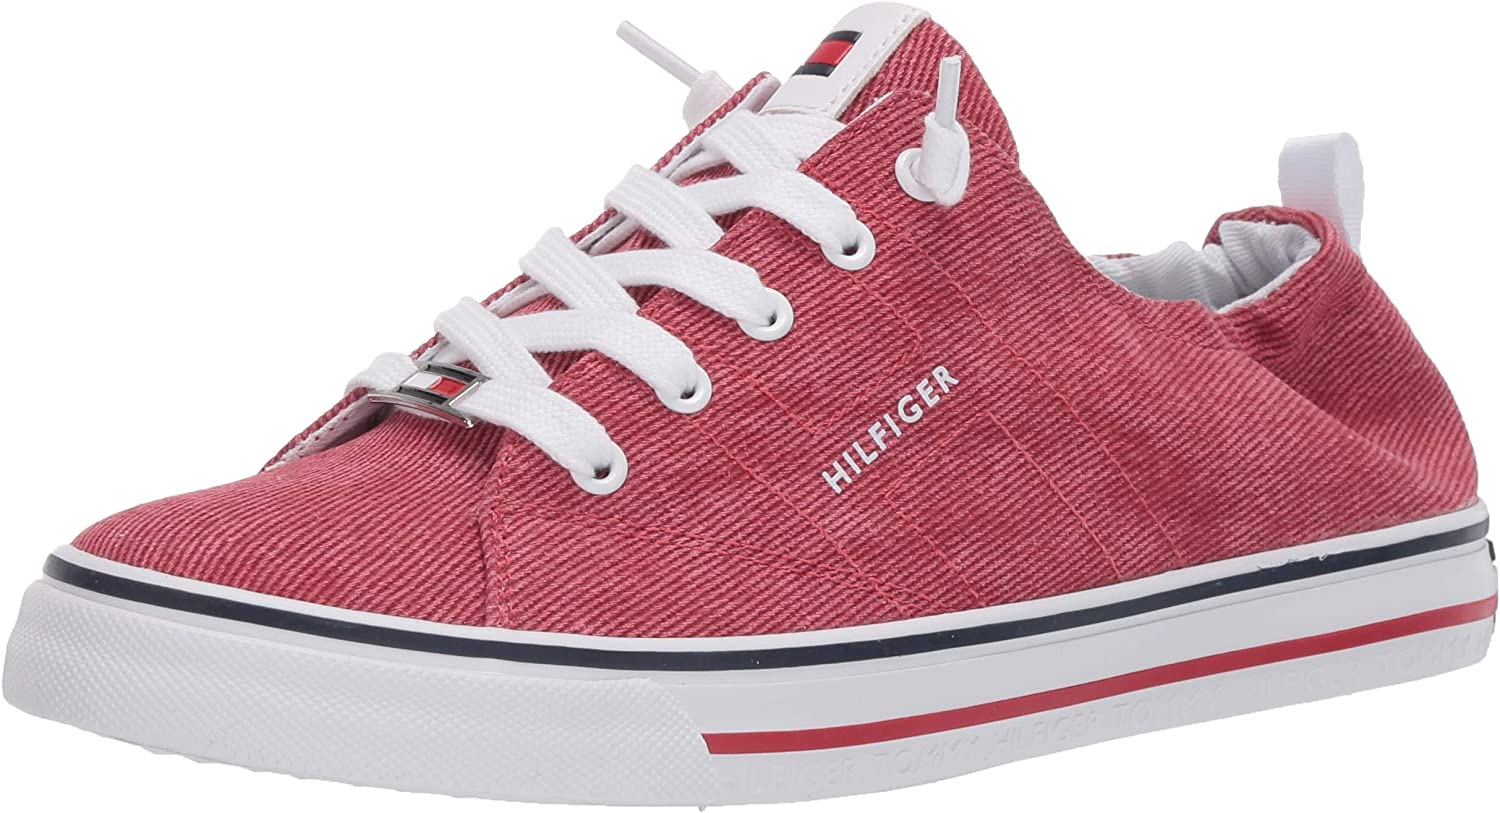 New Orleans Mall Tommy Hilfiger Cheap mail order shopping Women's Sneaker Fashion